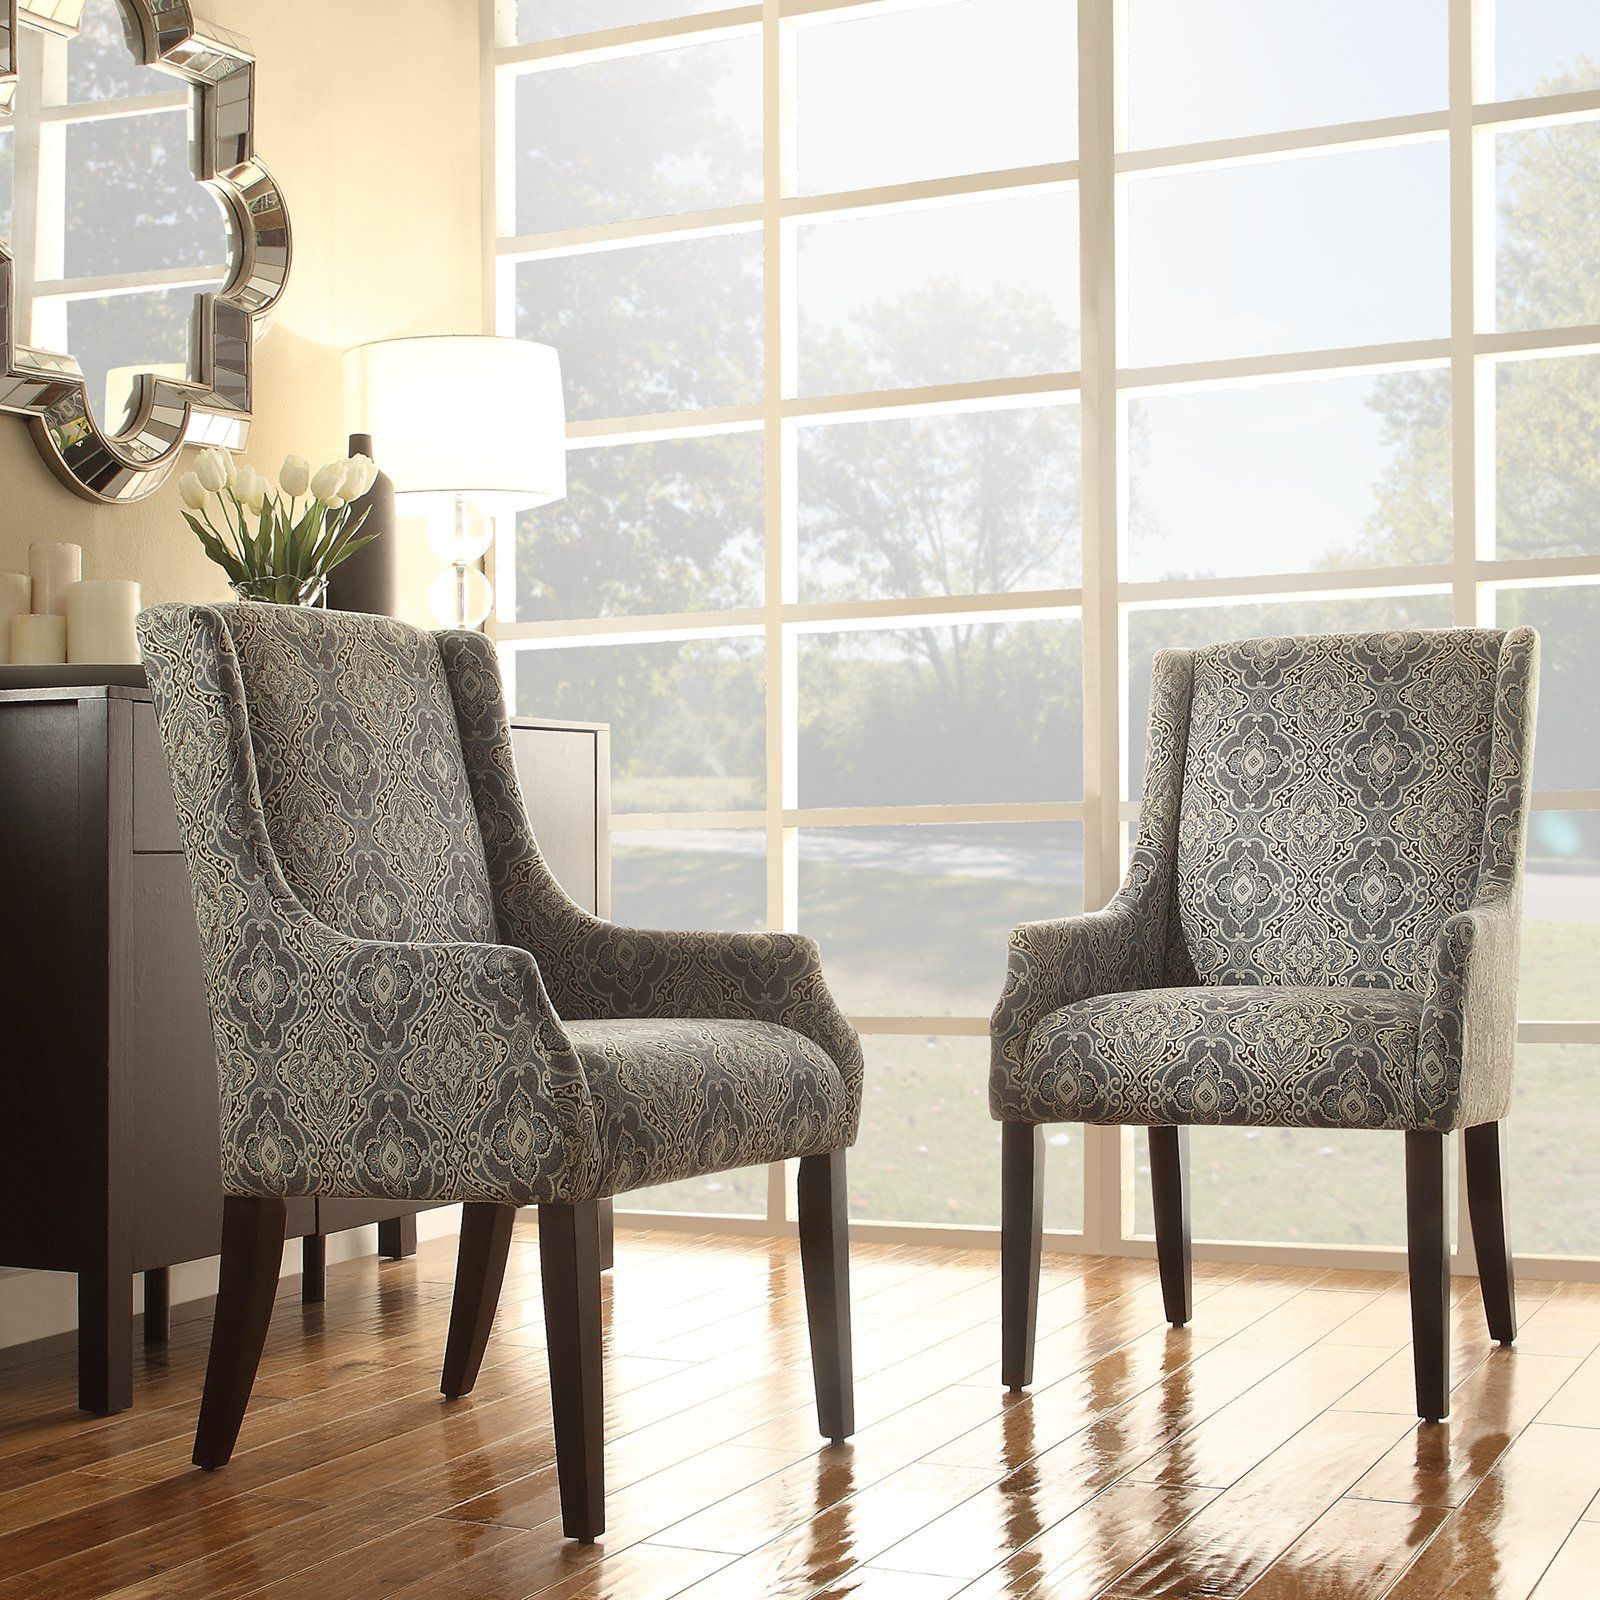 Best Weston Home Blue Print Fabric Accent Chair With Sloping 400 x 300